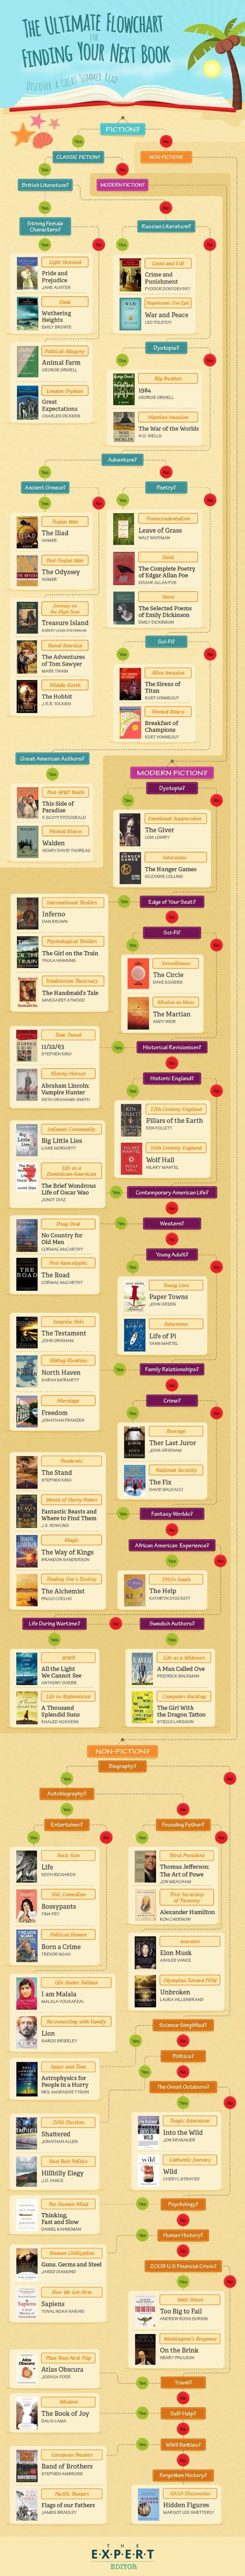 Find Your Next Great Read With This Ultimate Flowchart (infographic)